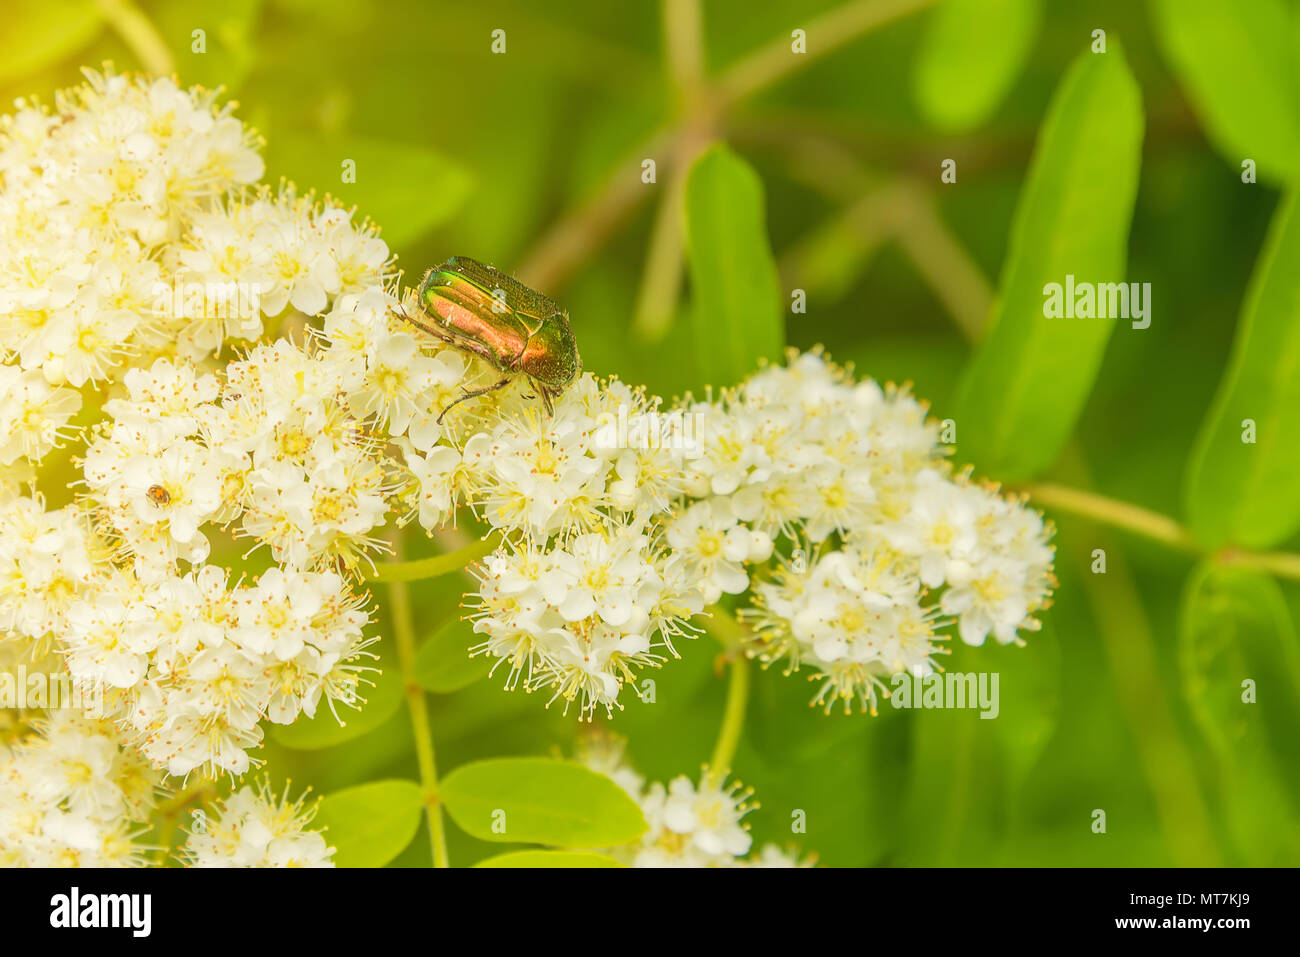 a small beetle crawling on a flower, a ladybug in the grass - Stock Image